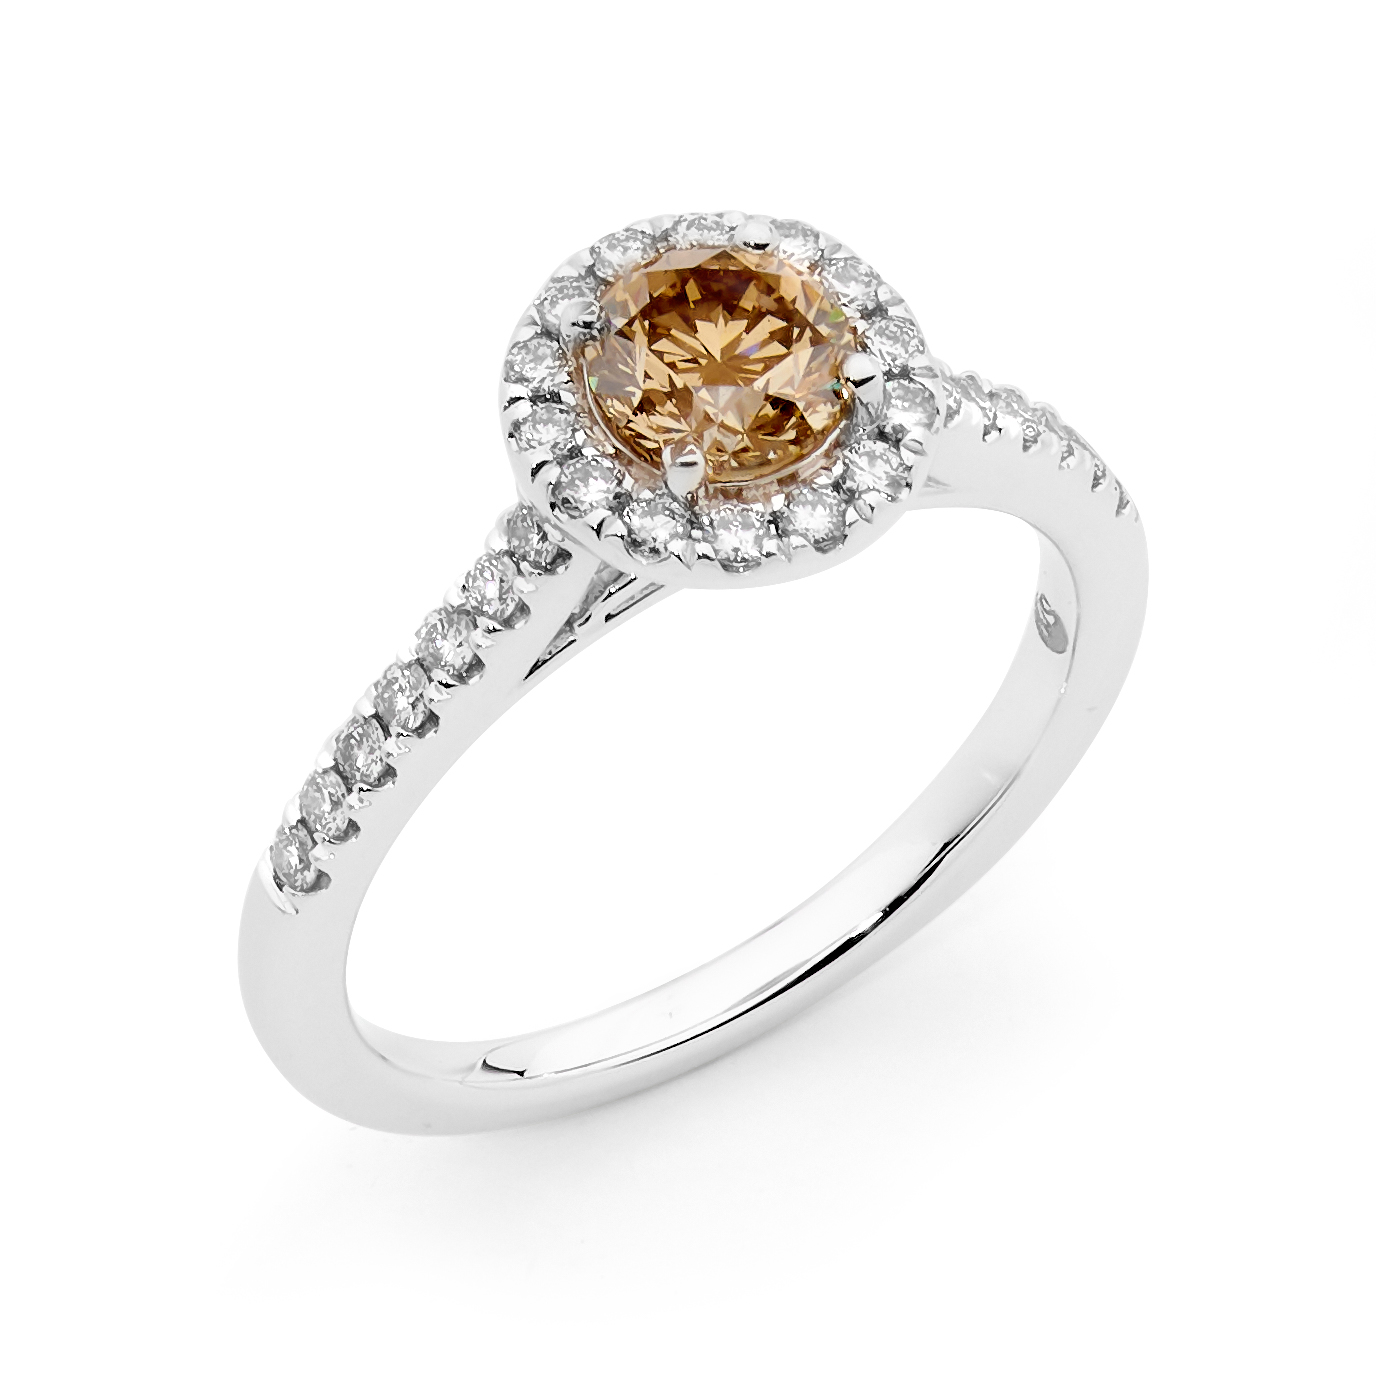 Photo of Champagne and White Diamond Ring